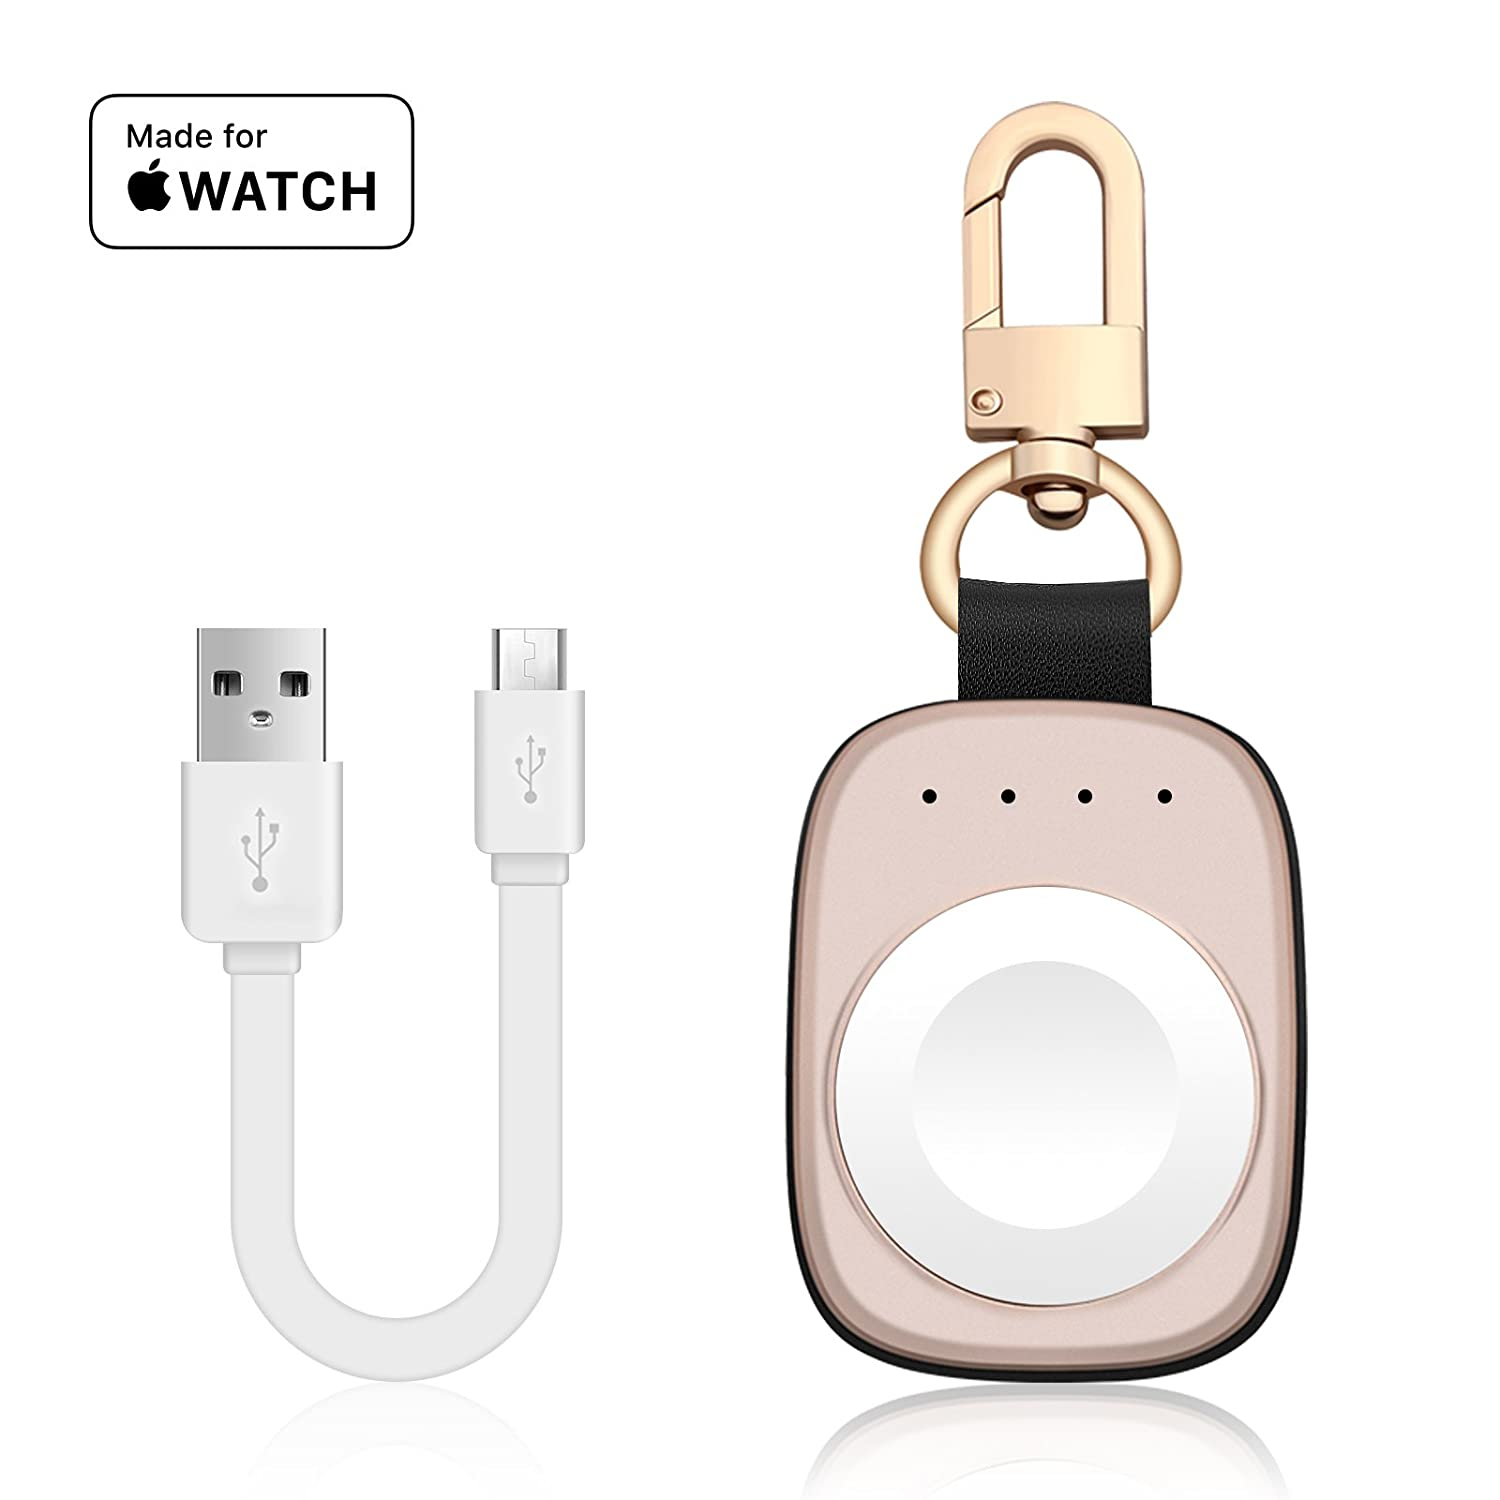 Accessories & Parts Reliable Keychain Wireless Charger For Phone Watch Portable Magnetic Charger Built In Power Bank For Iwatch Iphone